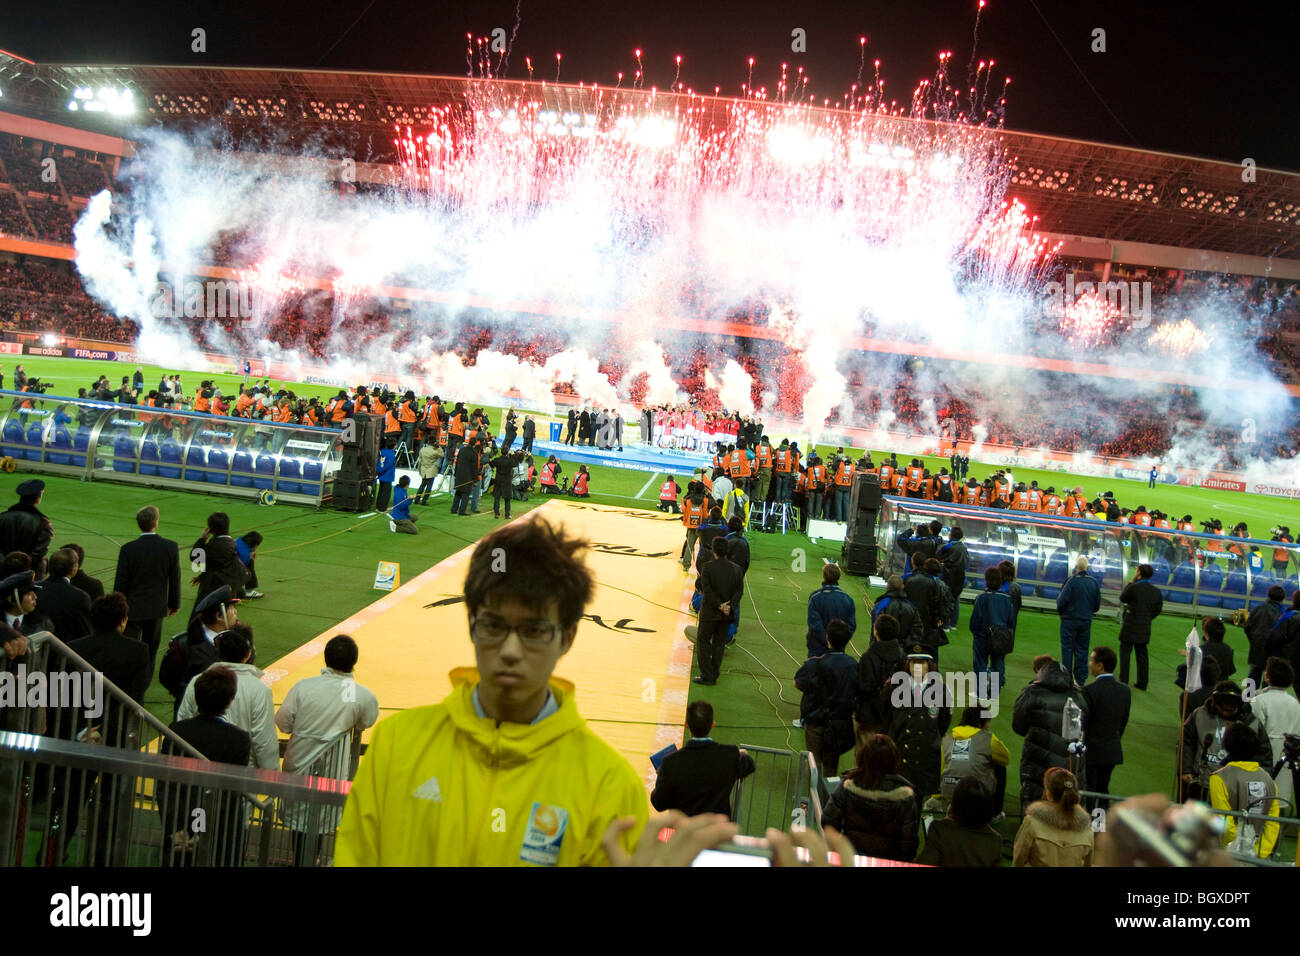 Manchester United beat Liga de Quito,1-0, in the final of the 2008 FIFA Club World Cup, at the Nissan Stadium, Japan. - Stock Image